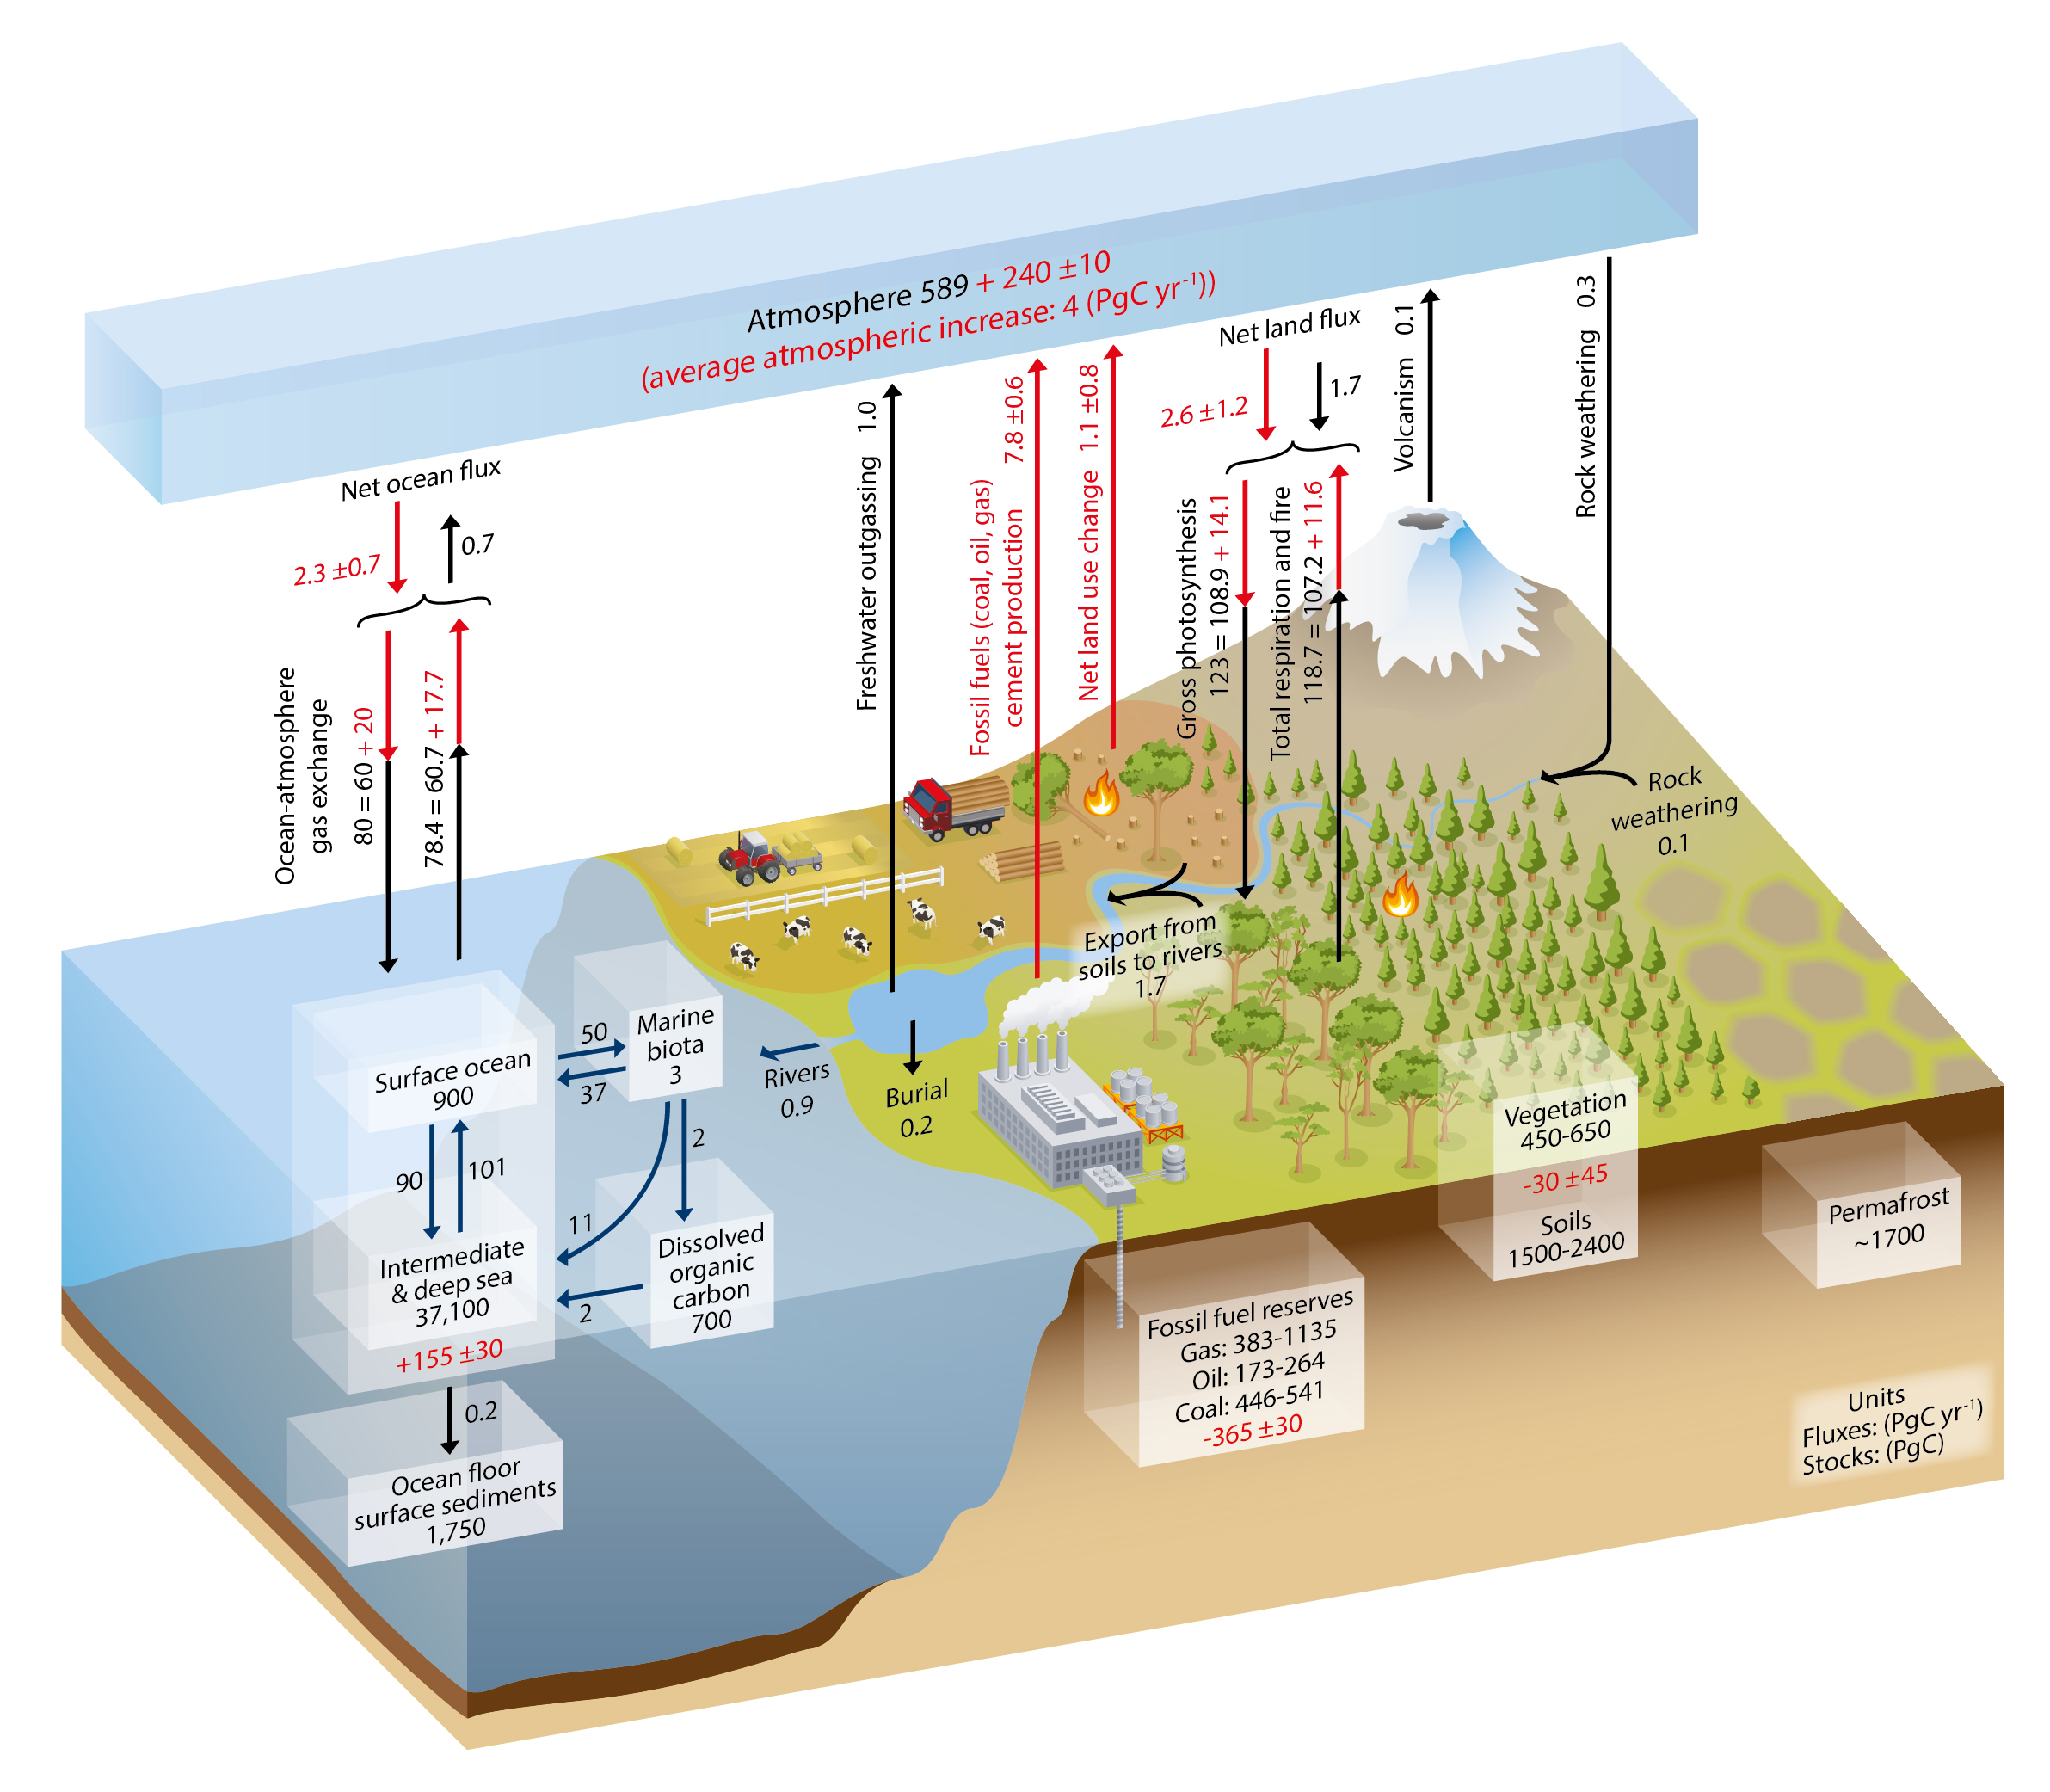 This image shows an illustration of the various sources and sinks of carbon dioxide. The natural emissions are significantly higher 